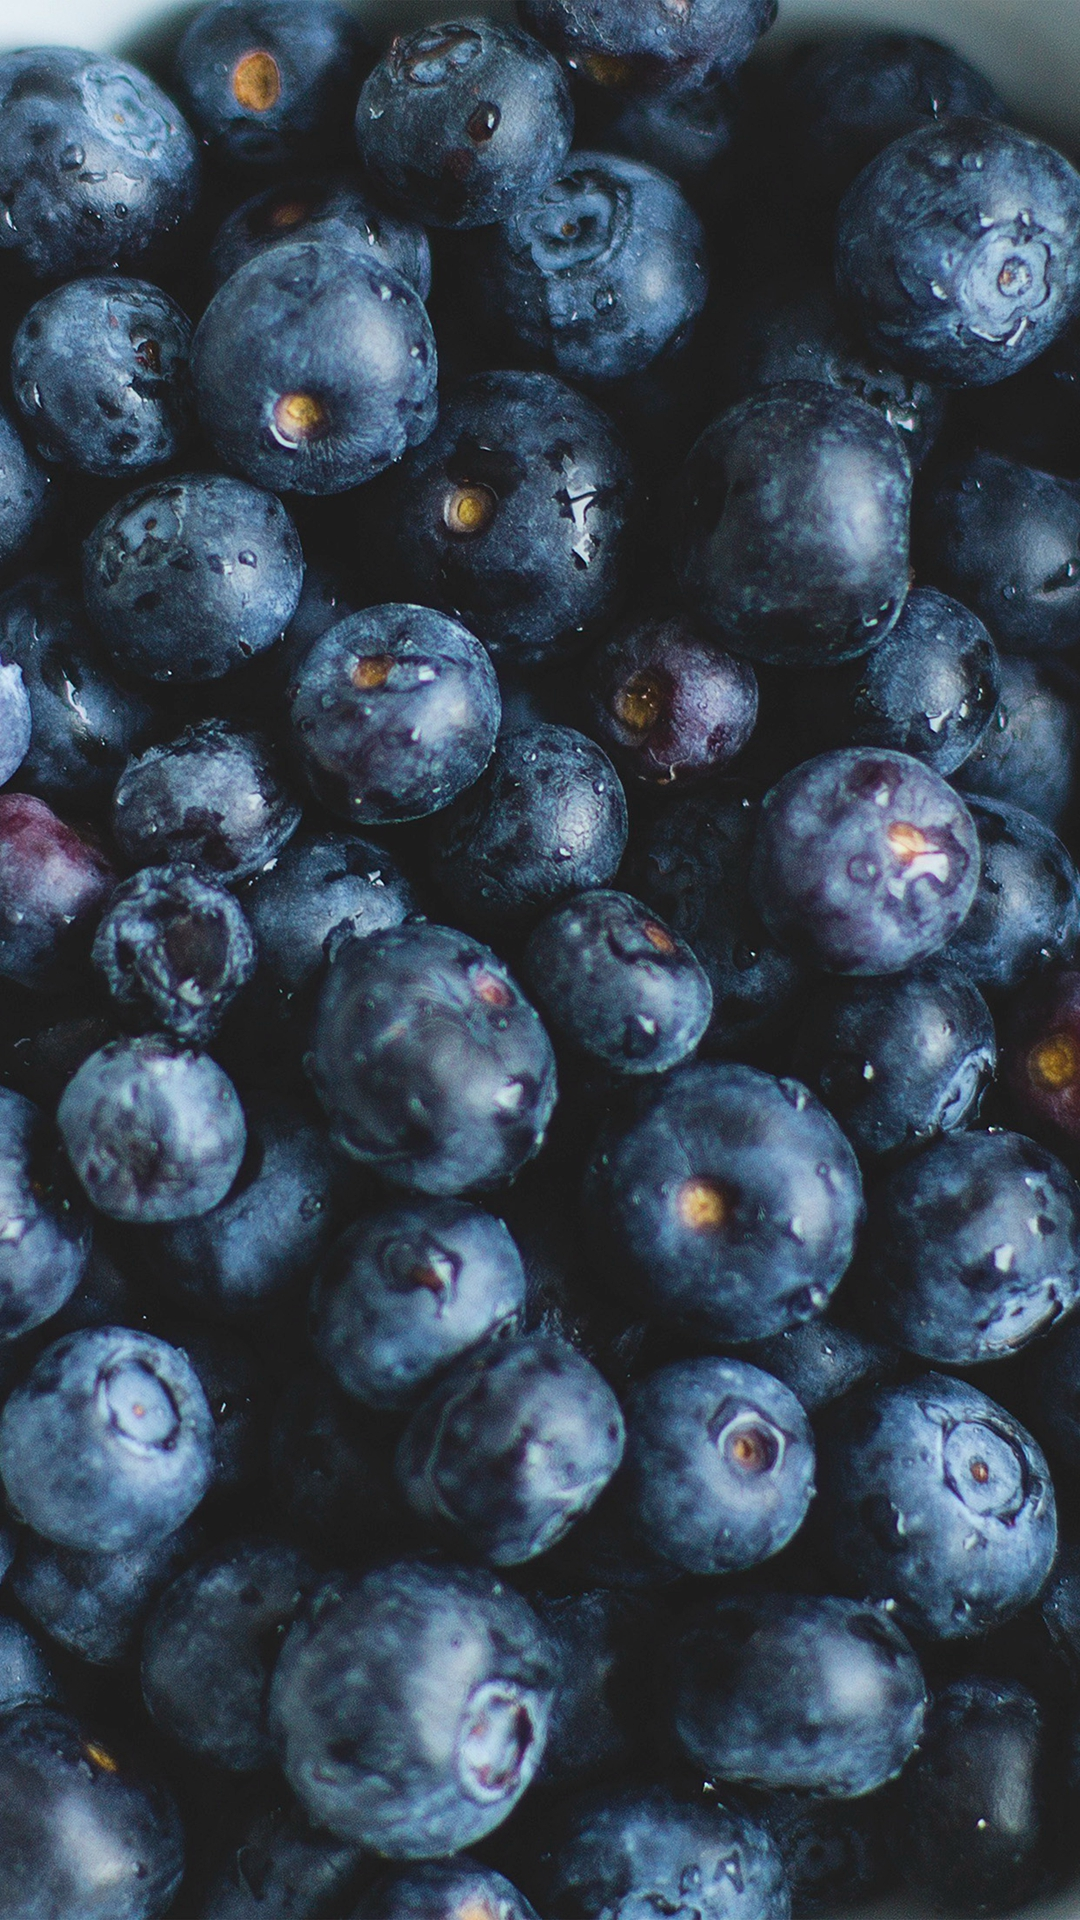 Sweet Blueberries Wallpaper